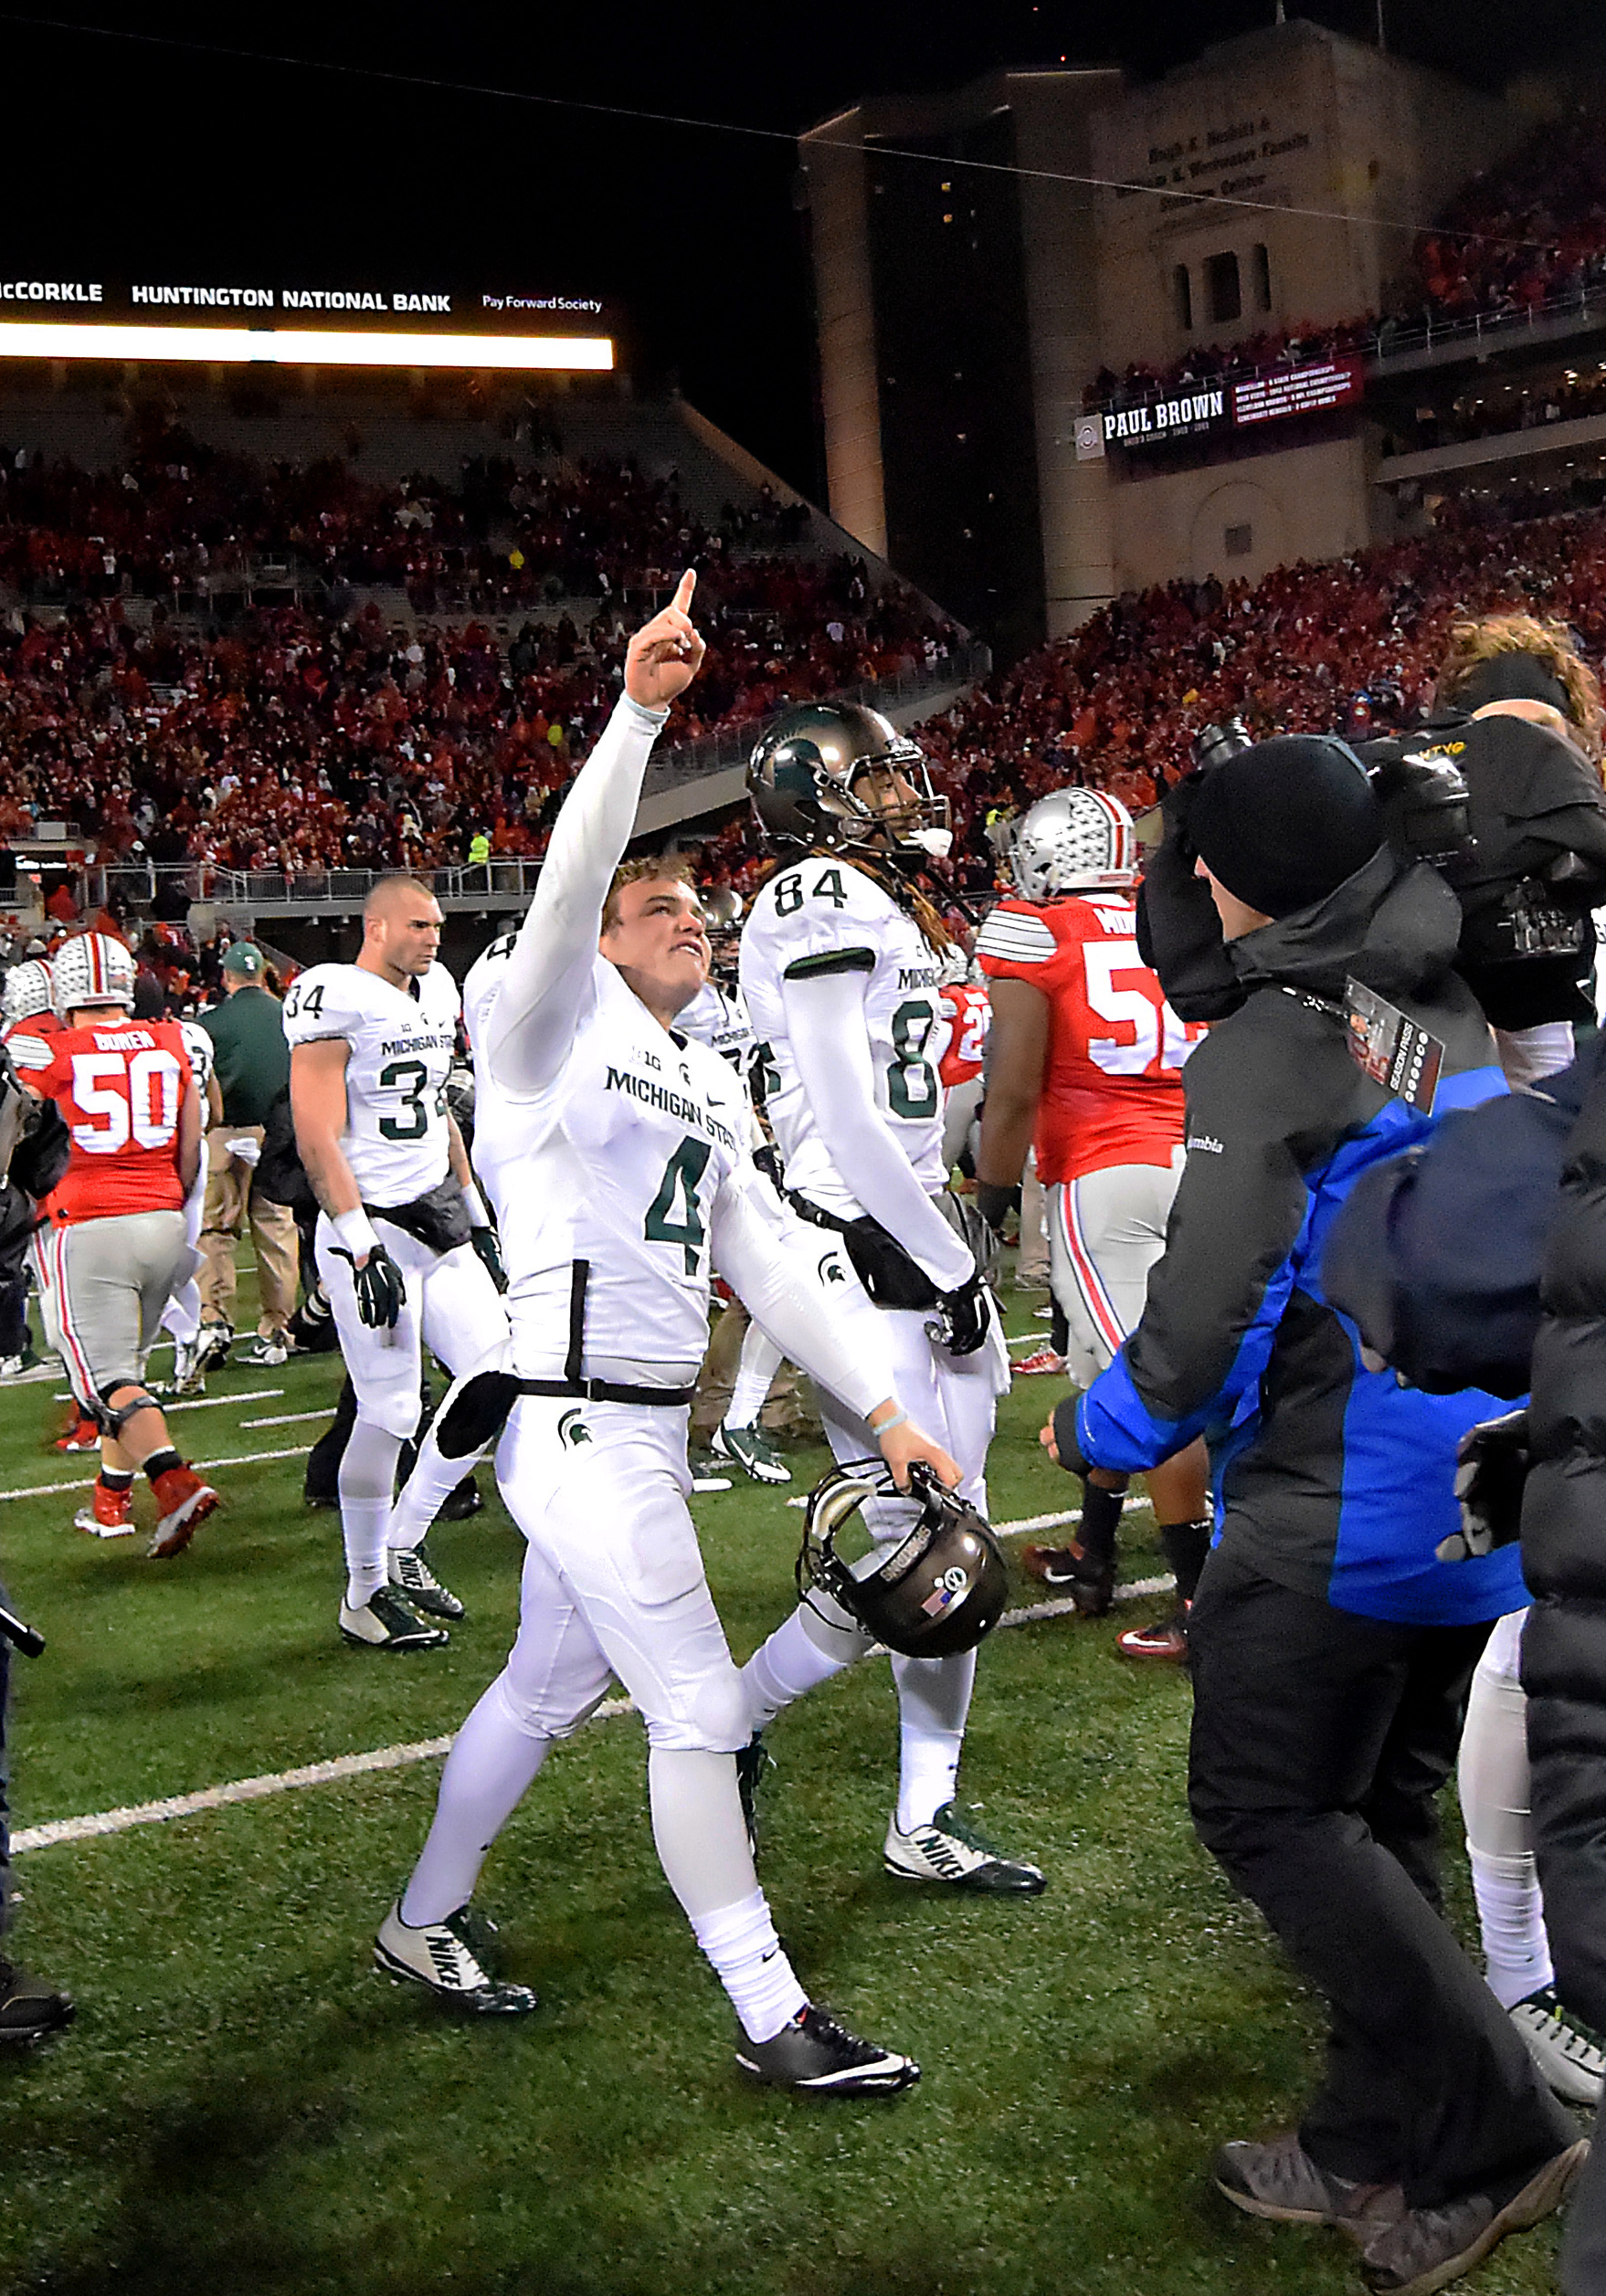 Michigan State kicker Michael Geiger (4) walks off the field in celebration after their 17-14 win over Ohio State in an NCAA college football game, Saturday, Nov. 21, 2015, in Columbus, Ohio. Geiger kicked the winning field goal as time expired in the gam